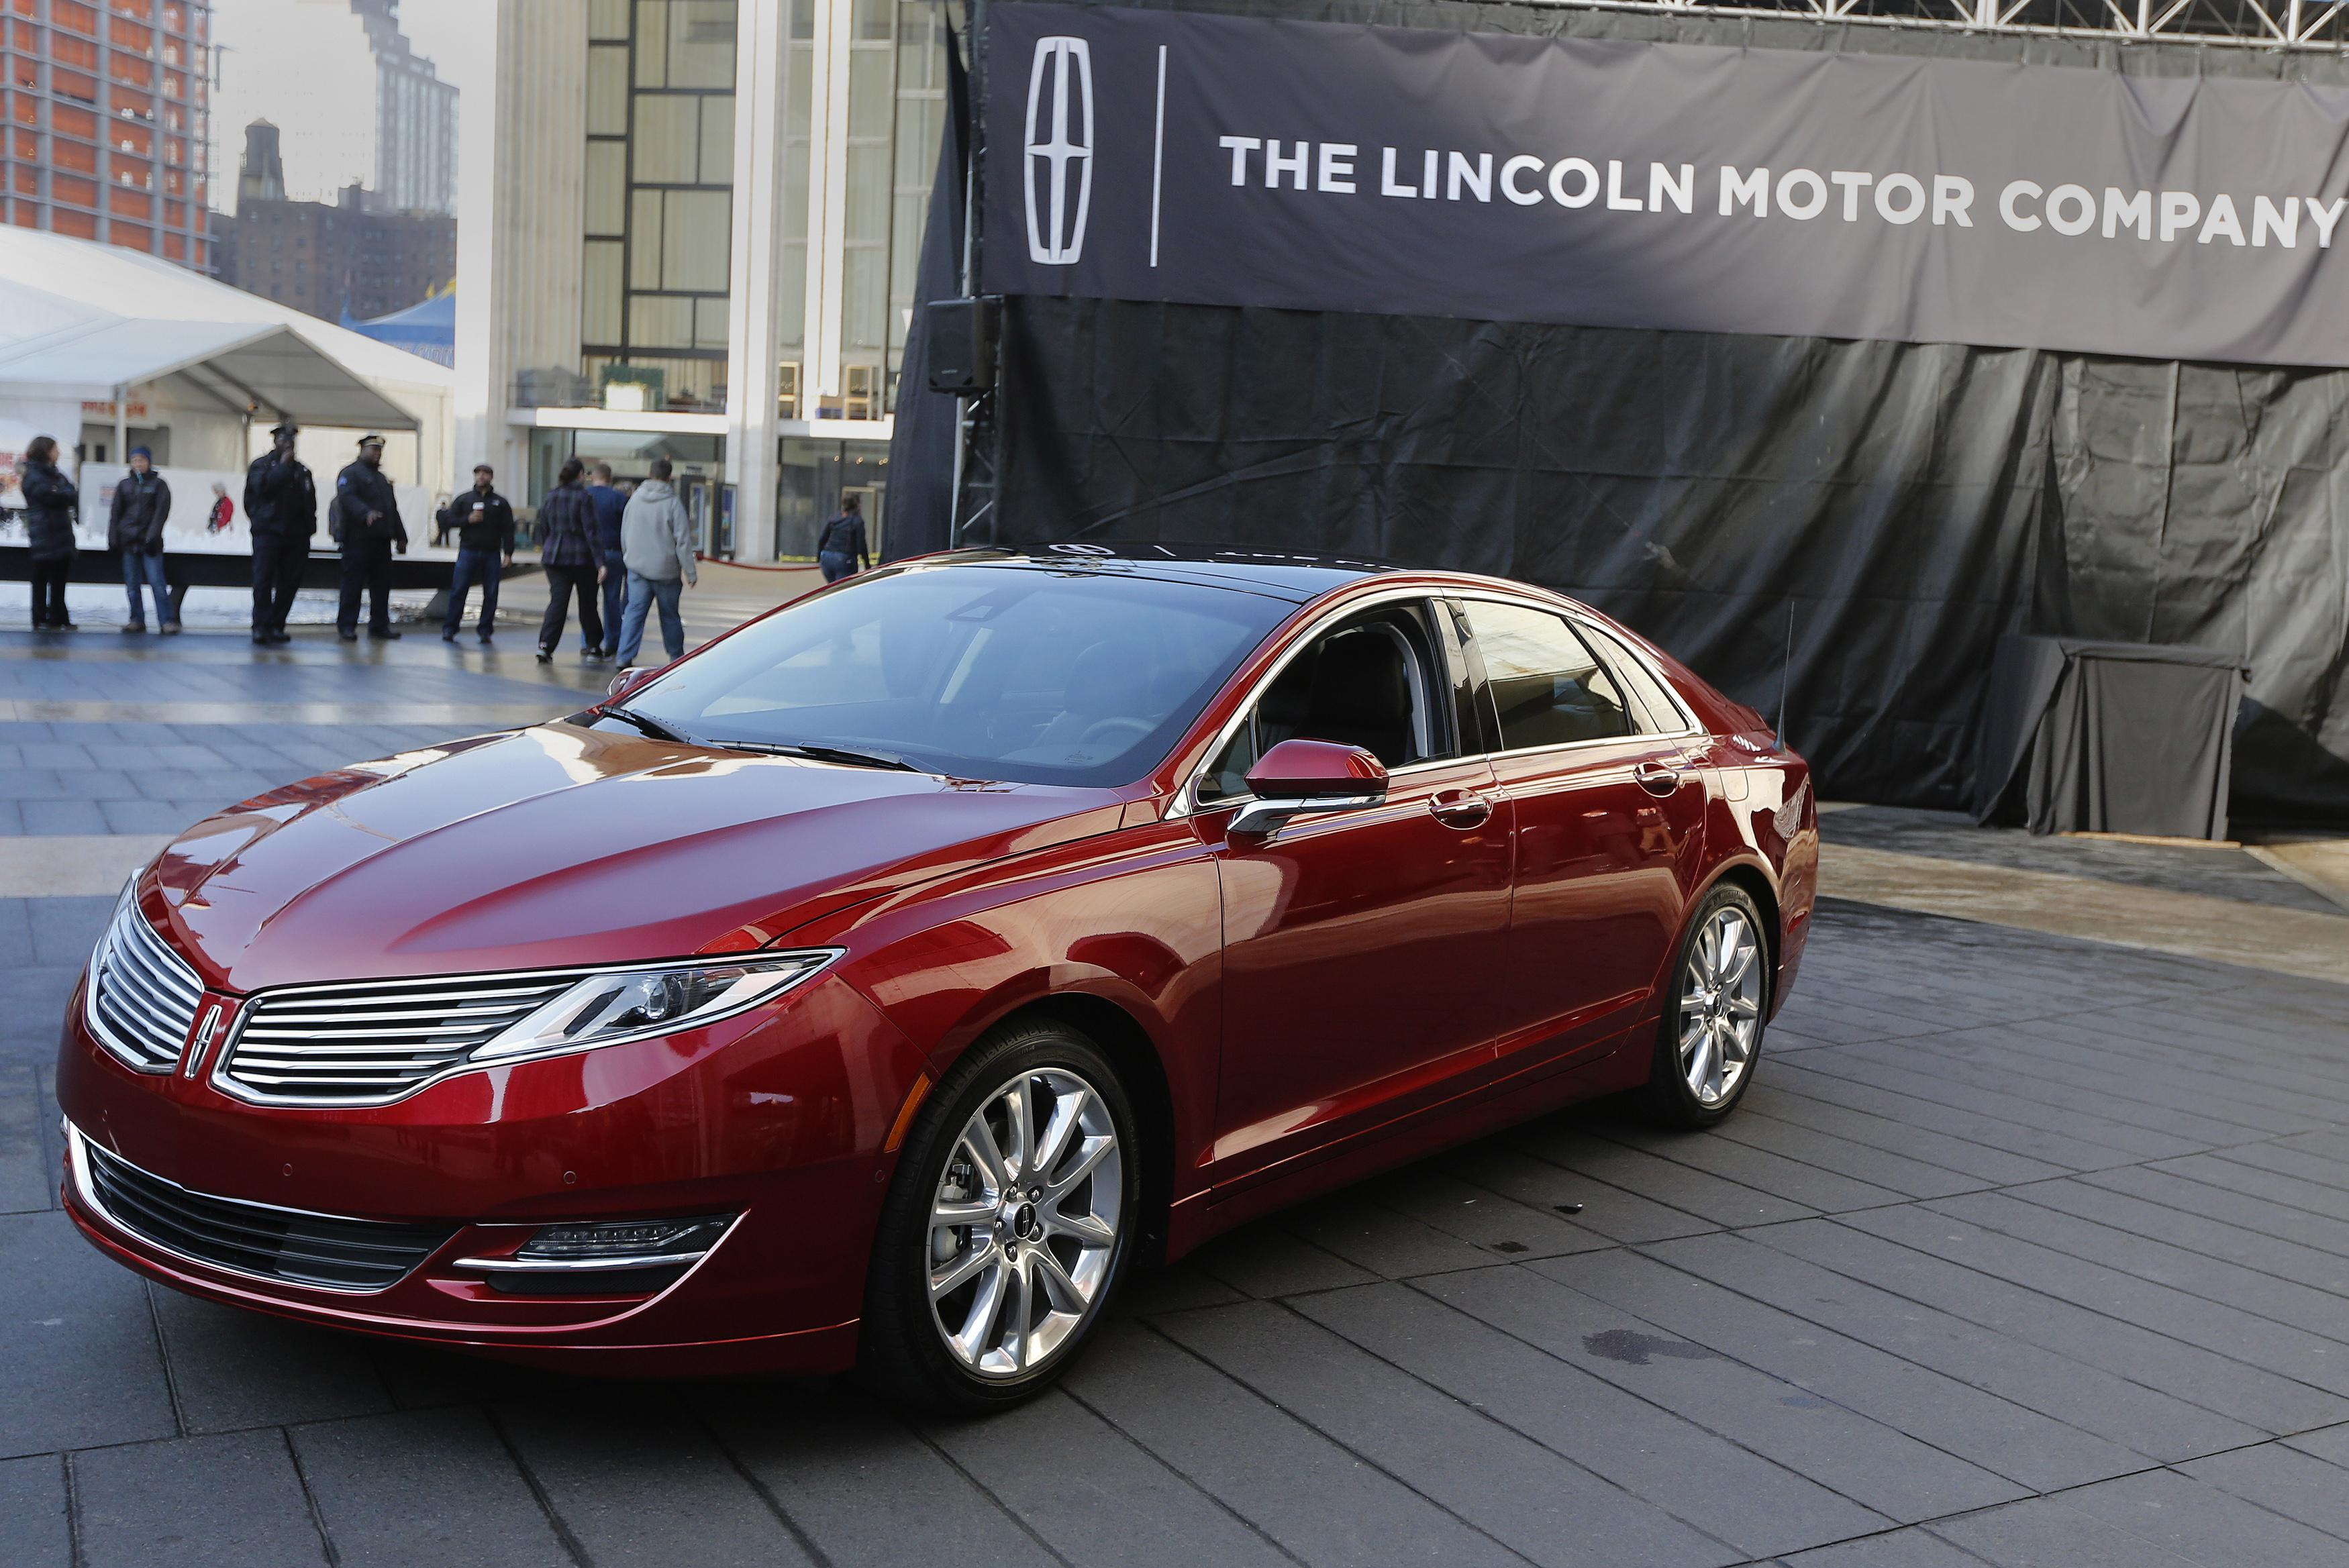 Ford Cars Safety Recall: 1 3 Million Fusion, Lincoln & Focus